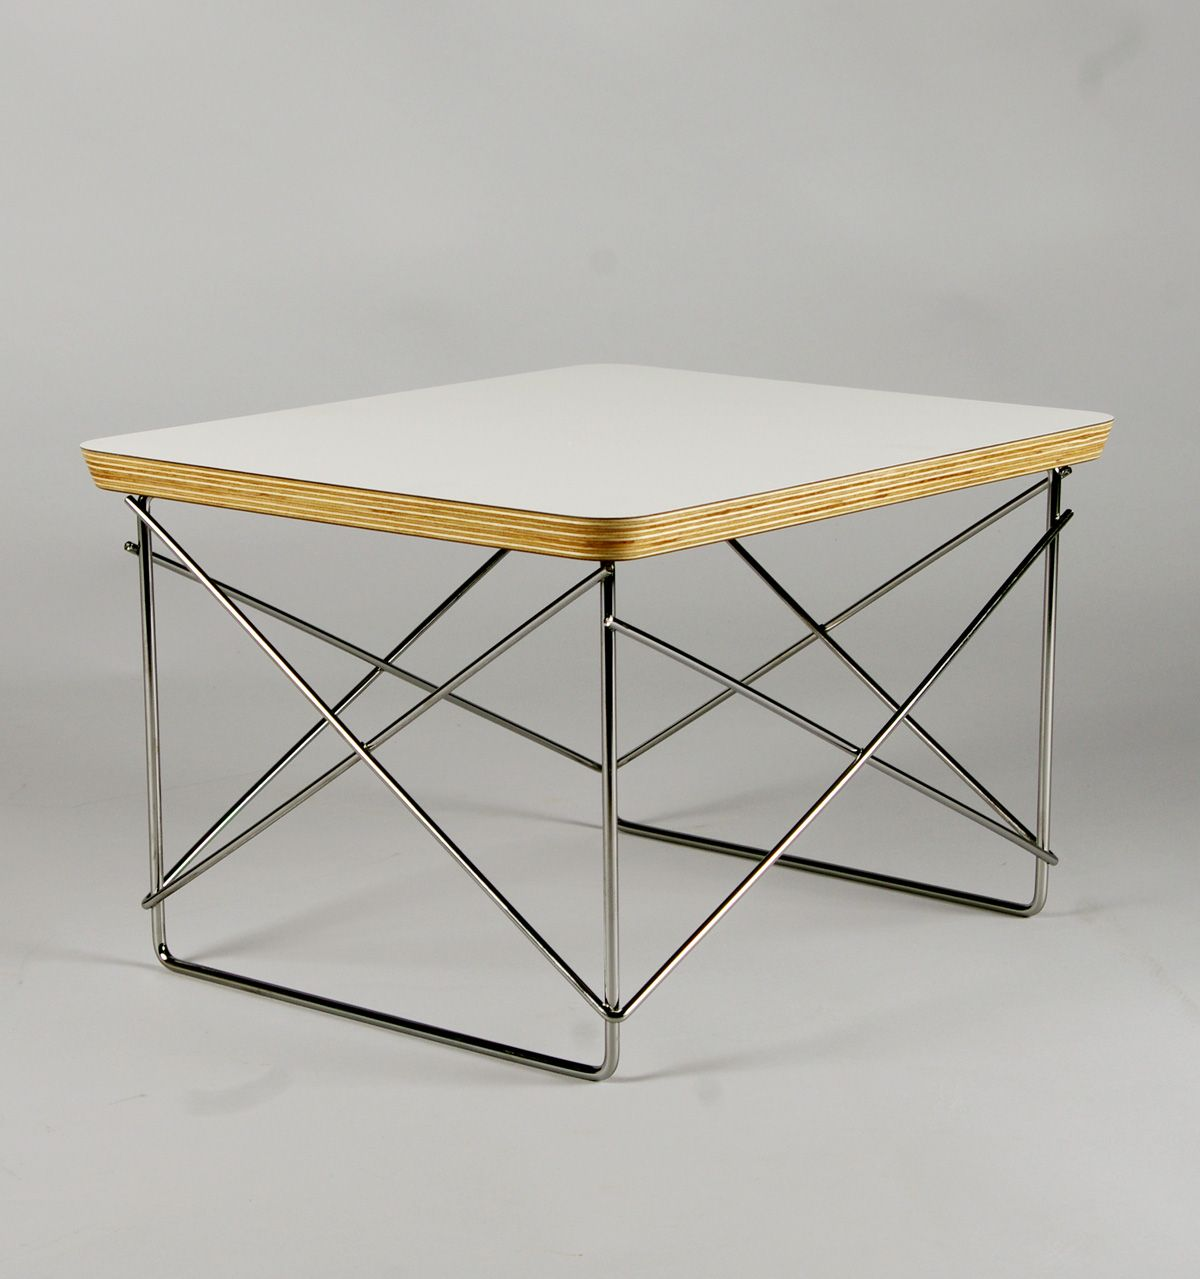 Charles & Ray Eames Mid century modern table